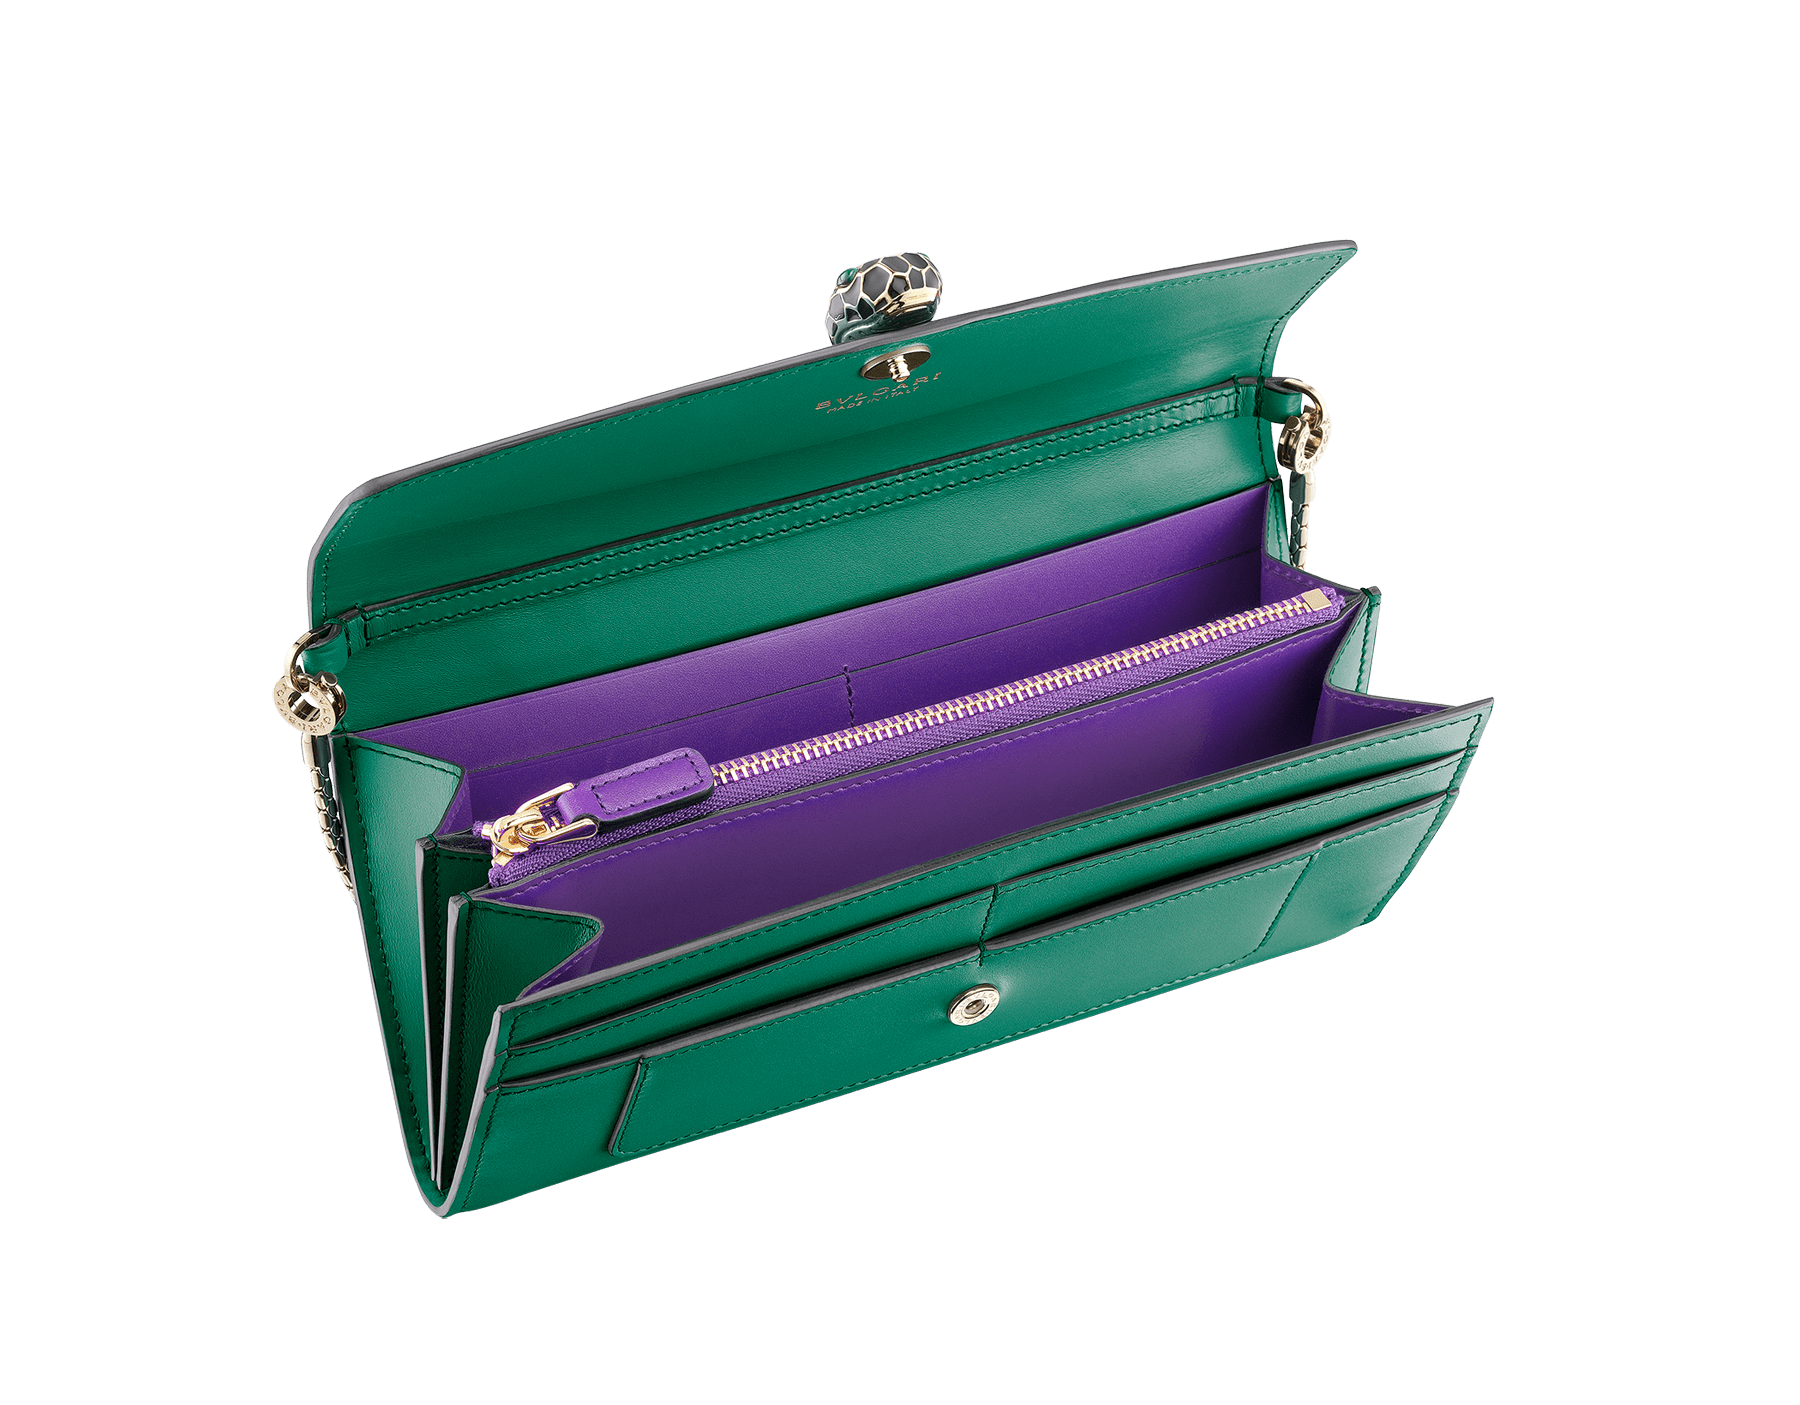 Serpenti Forever wallet pouch in carmine jasper and flash amethyst calf leather. Iconic snakehead stud closure in black and white enamel with green malachite eyes. SEA-WLT-LONGCHAIN-CL image 2